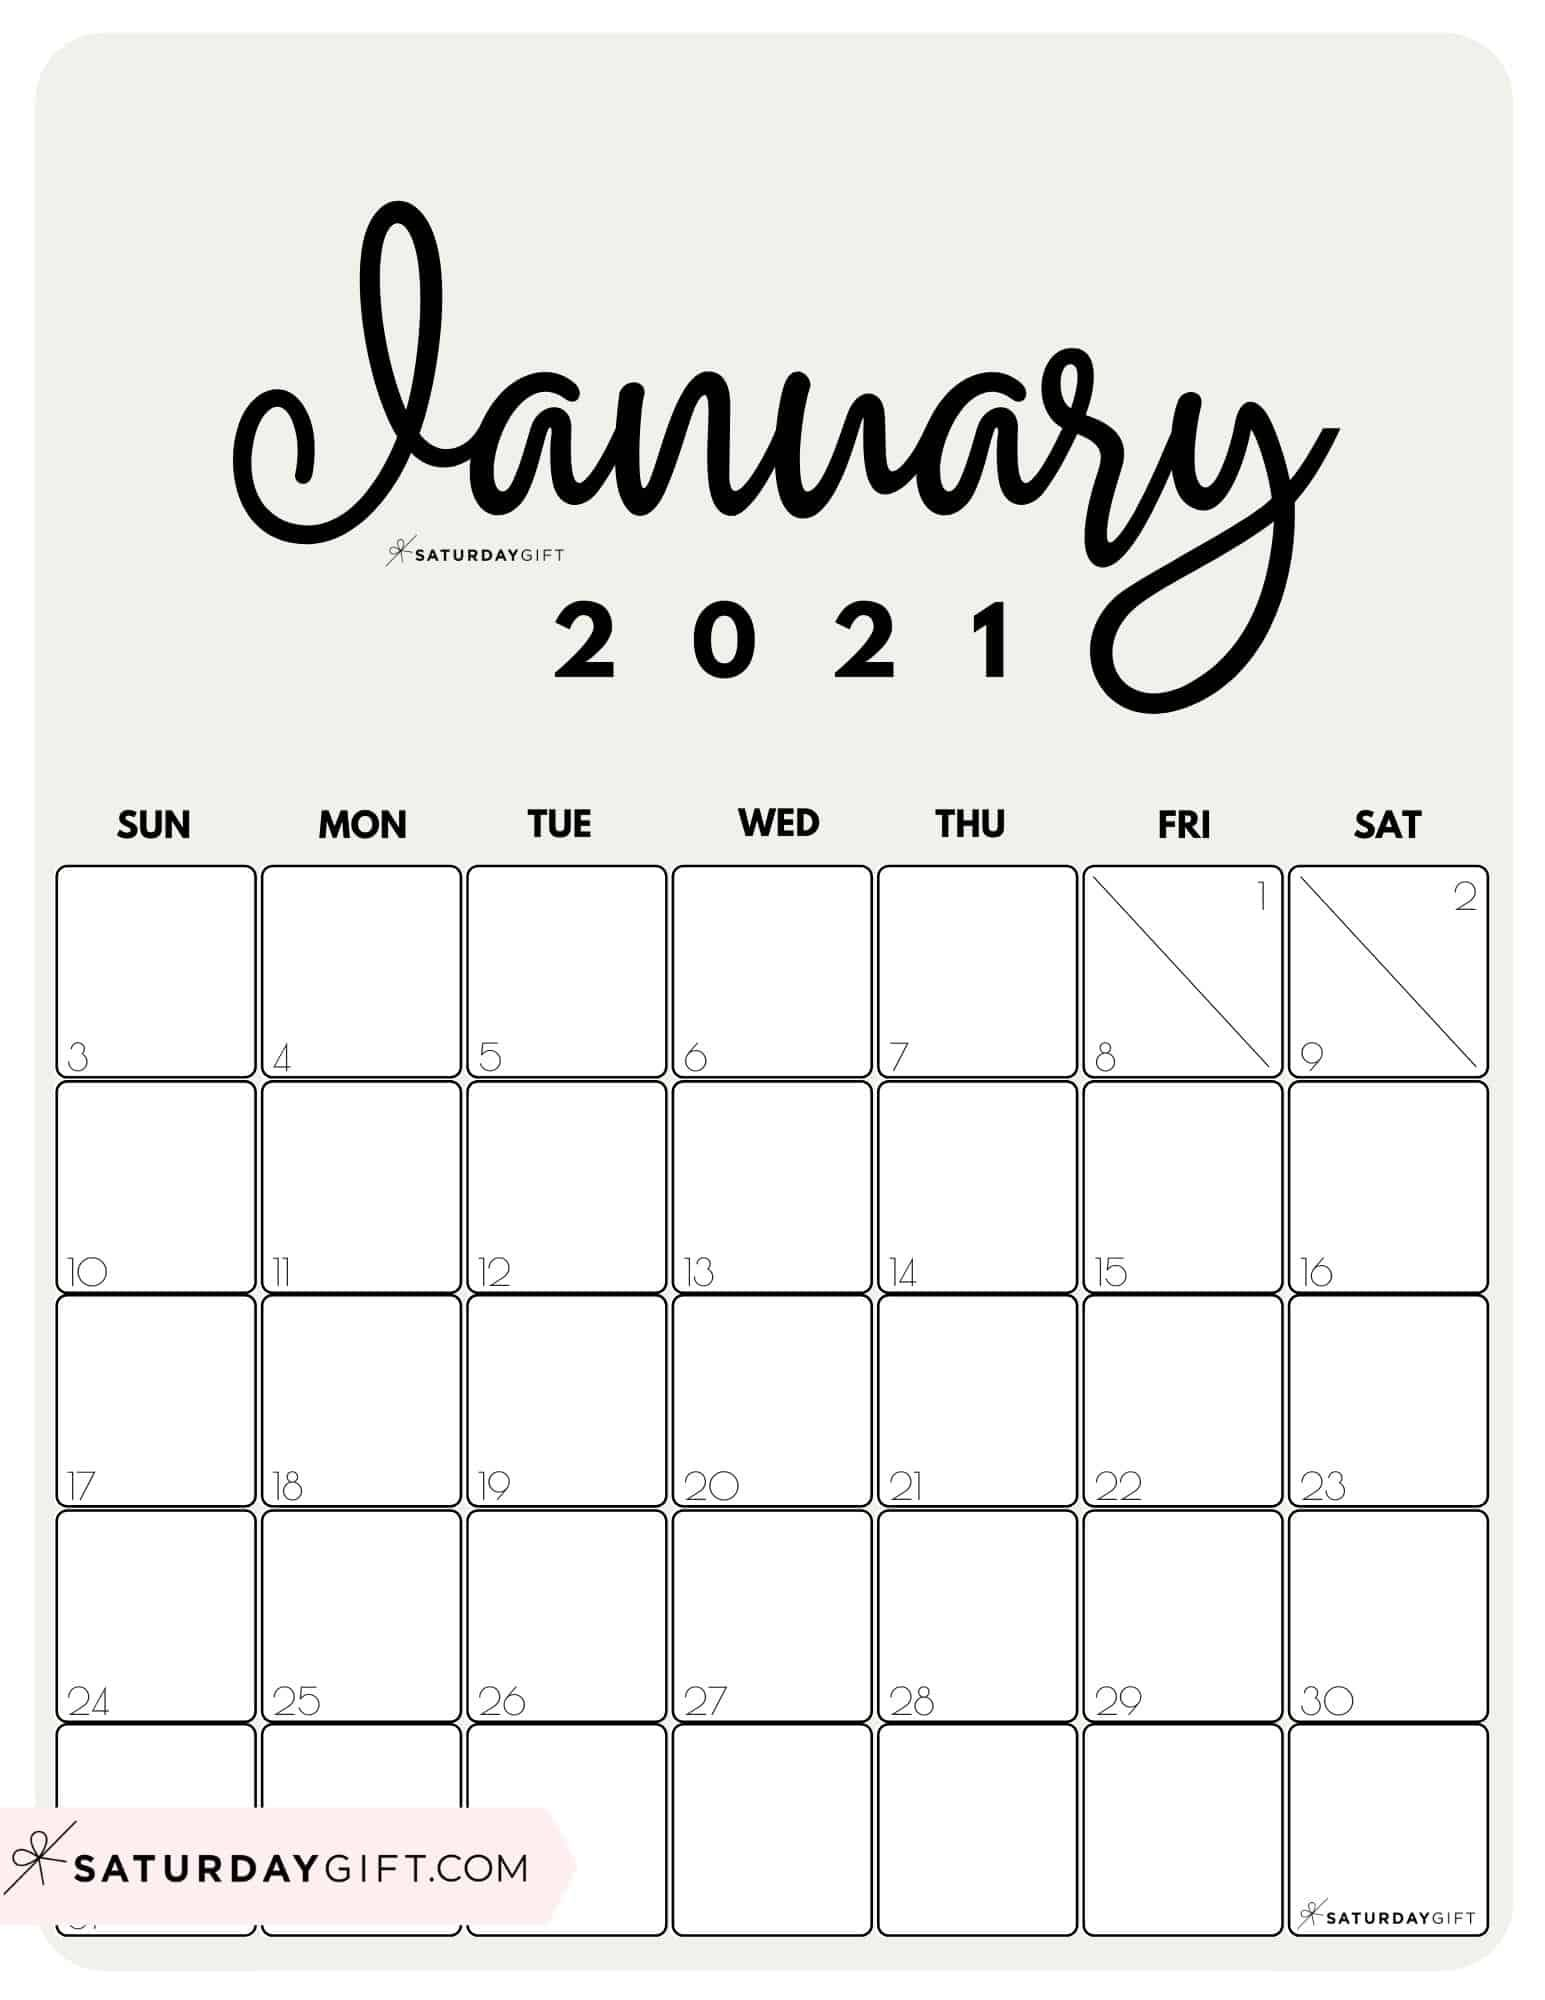 Cute Free Printable January 2021 Calendar Saturdaygift In 2020 Calendar Printables Vertical Calendar 2021 Calendar